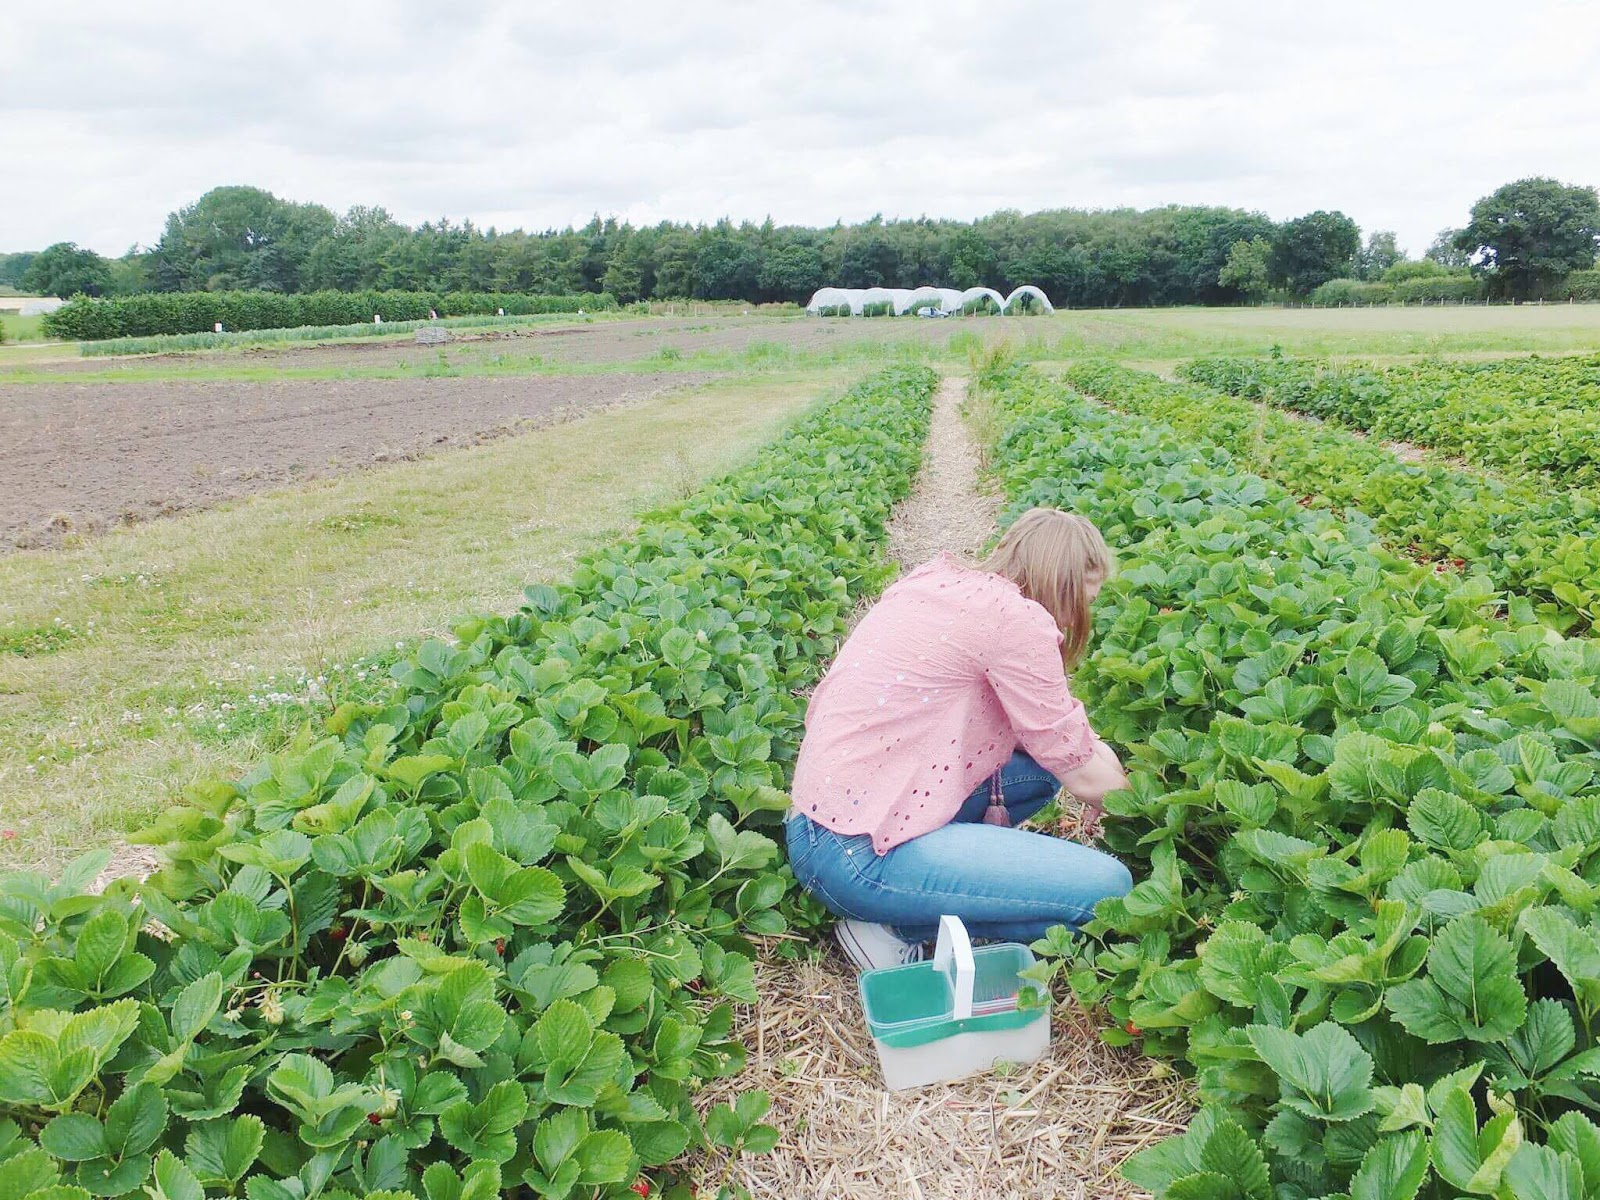 Bethany-Alice-Webb-Picking-Strawberries